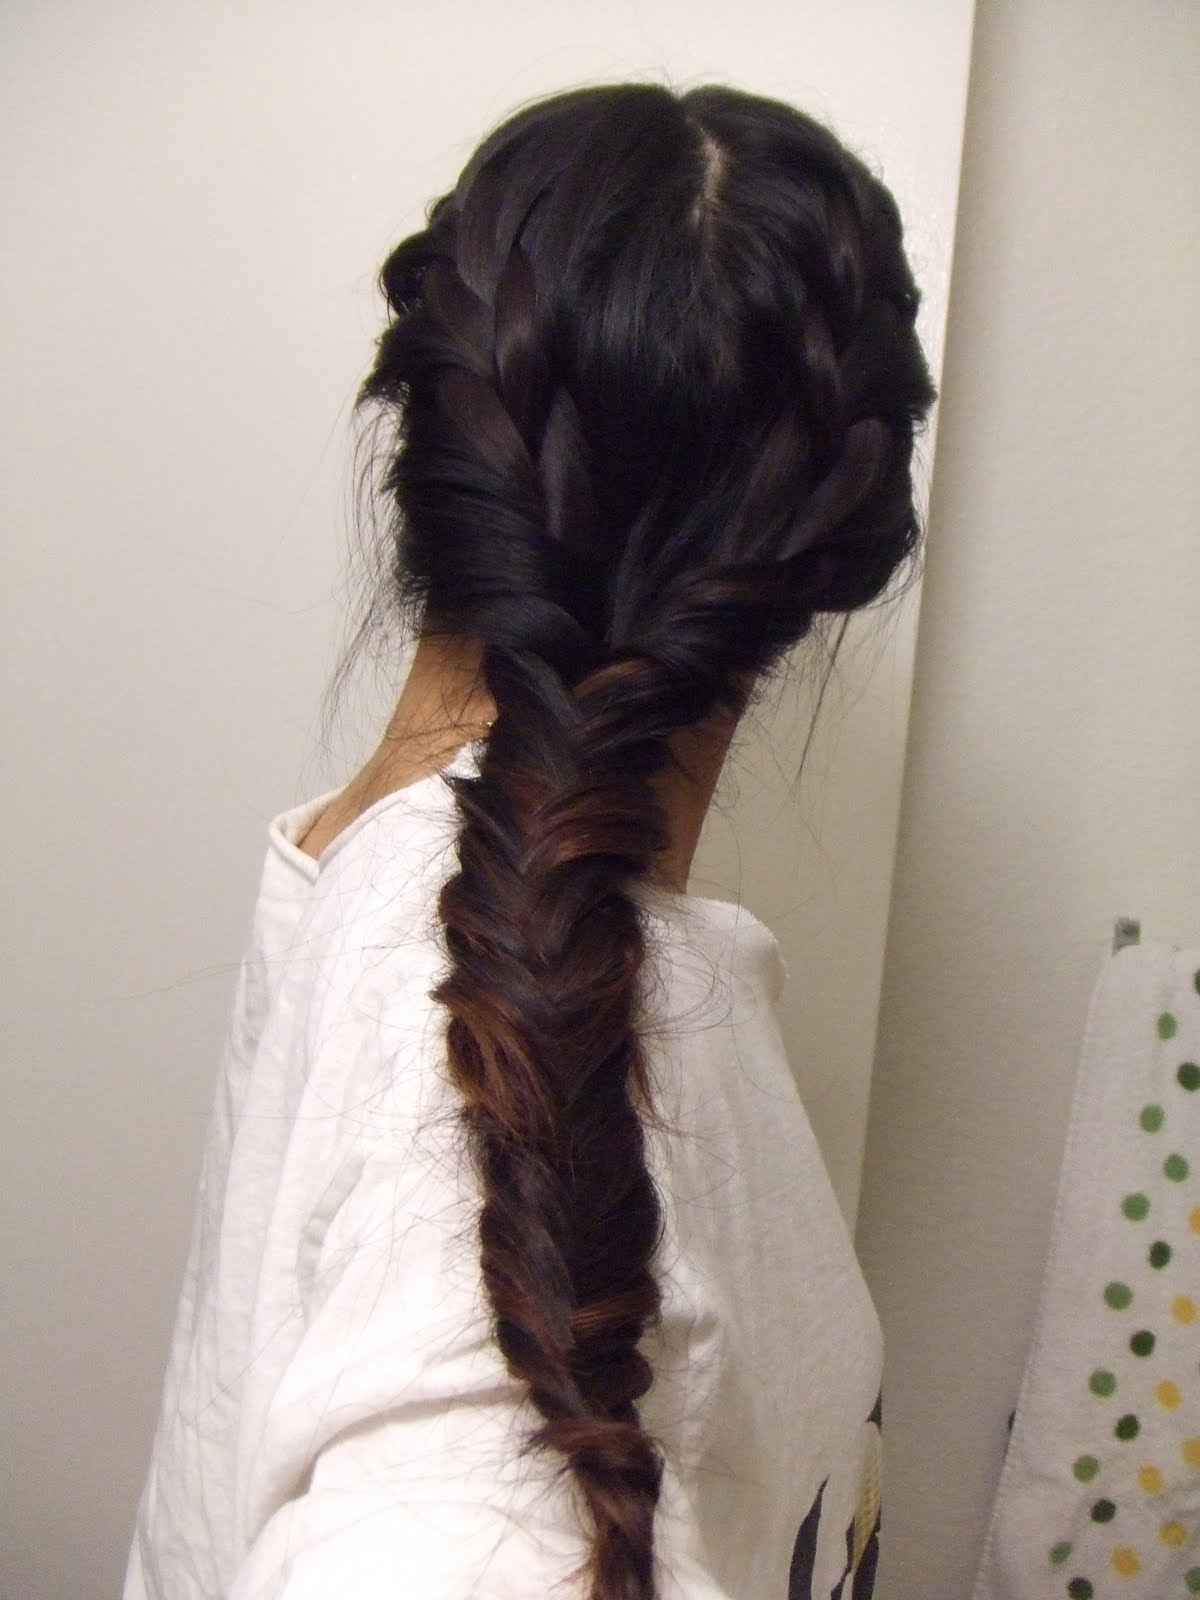 Current Two Braids Into One In The Beauty Owl: Princess Anne Hairstyle^^ (View 3 of 15)